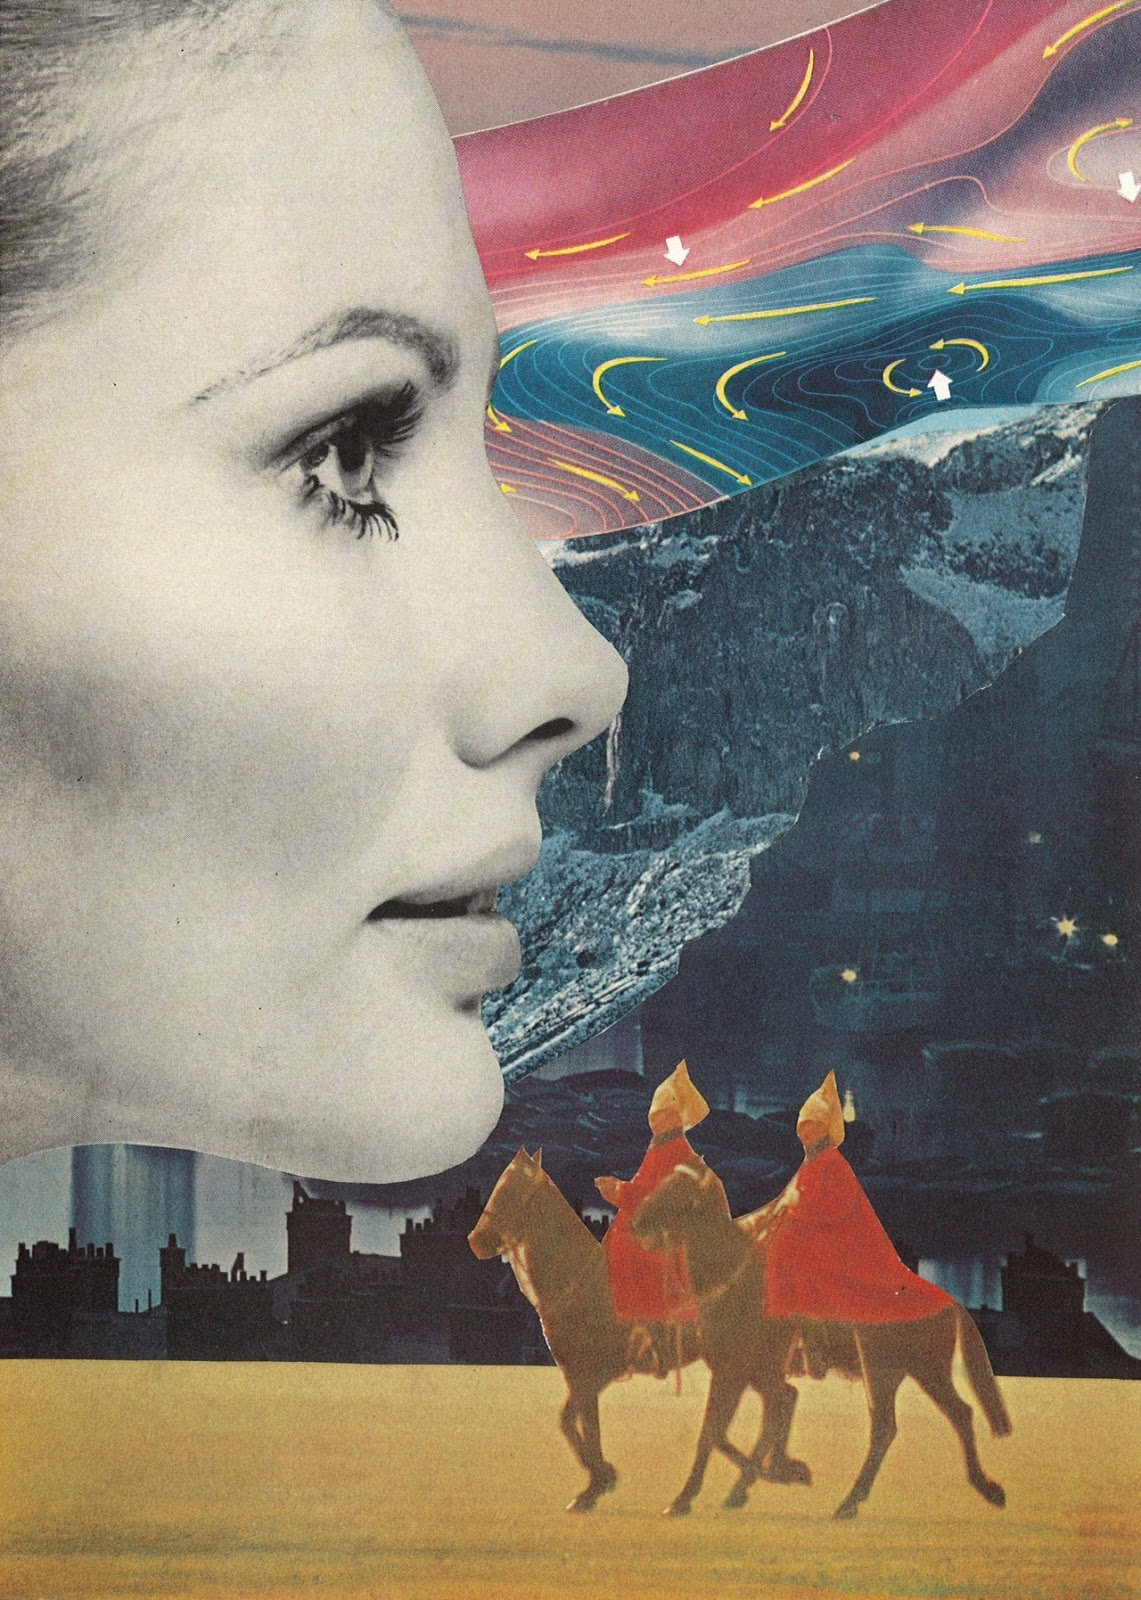 Doctor Ojiplatico. Jesse Treece. Collage Art by Jesse